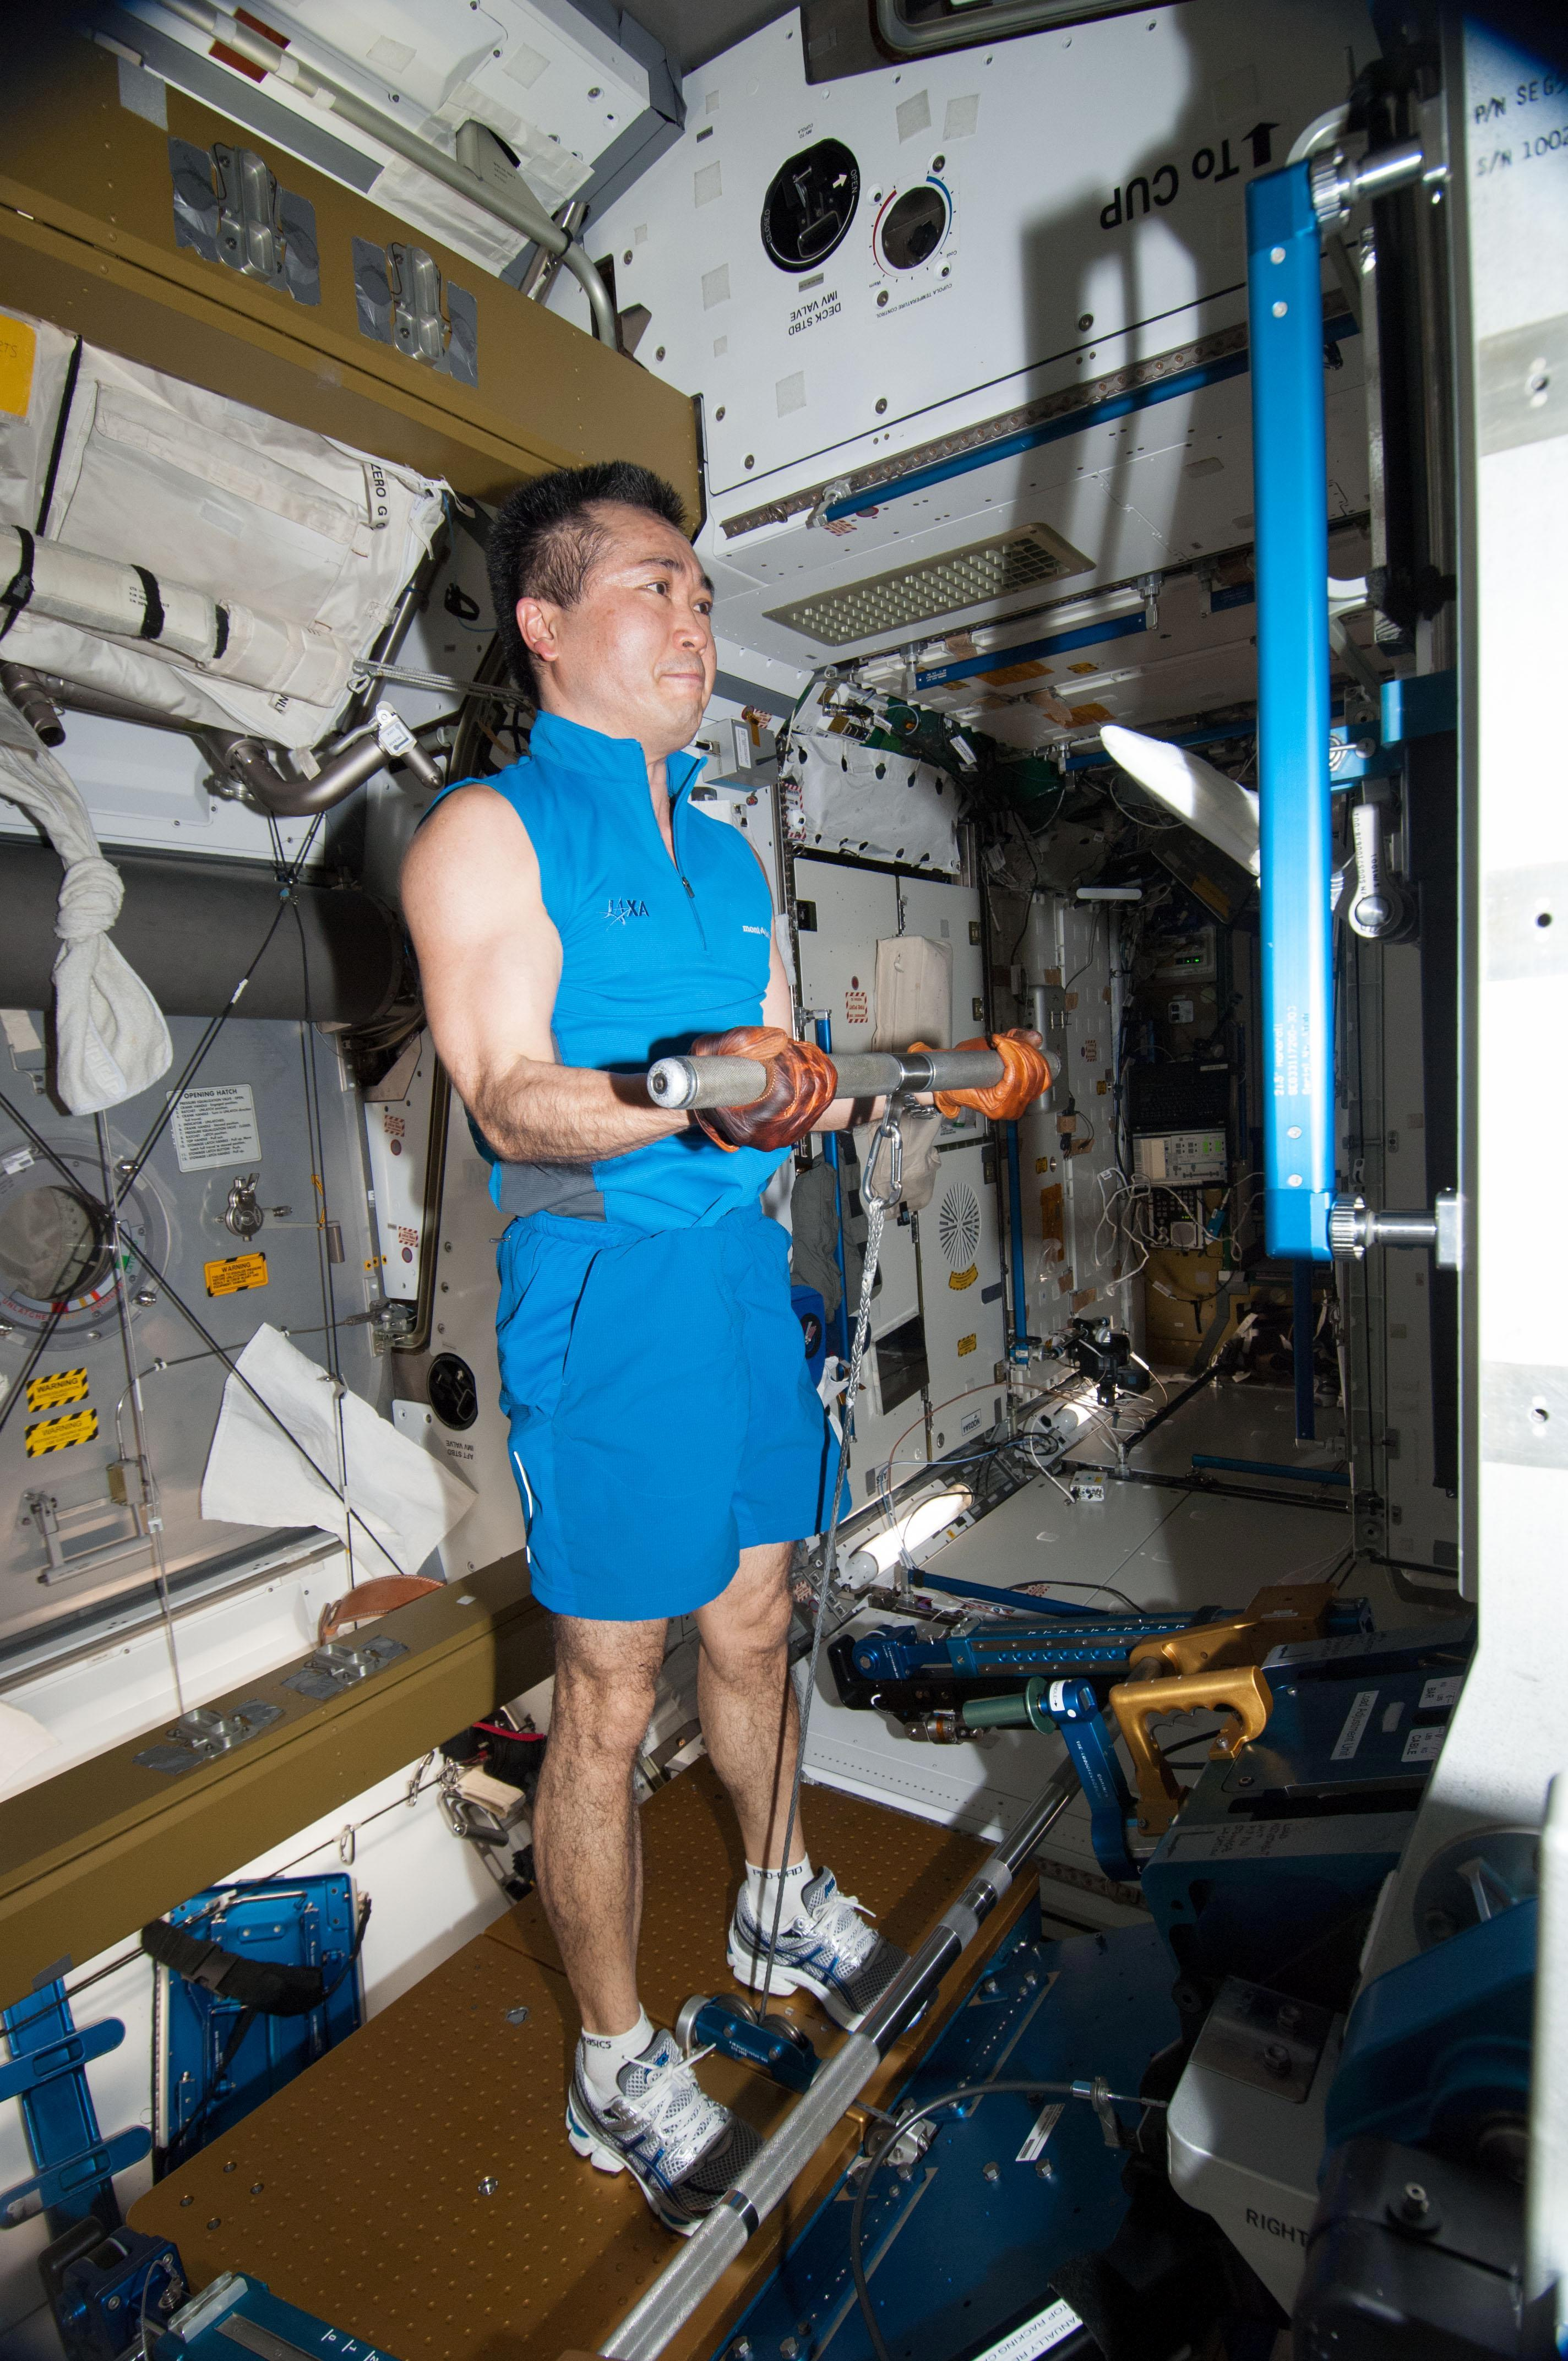 NASA - Advanced Resistive Exercise Device